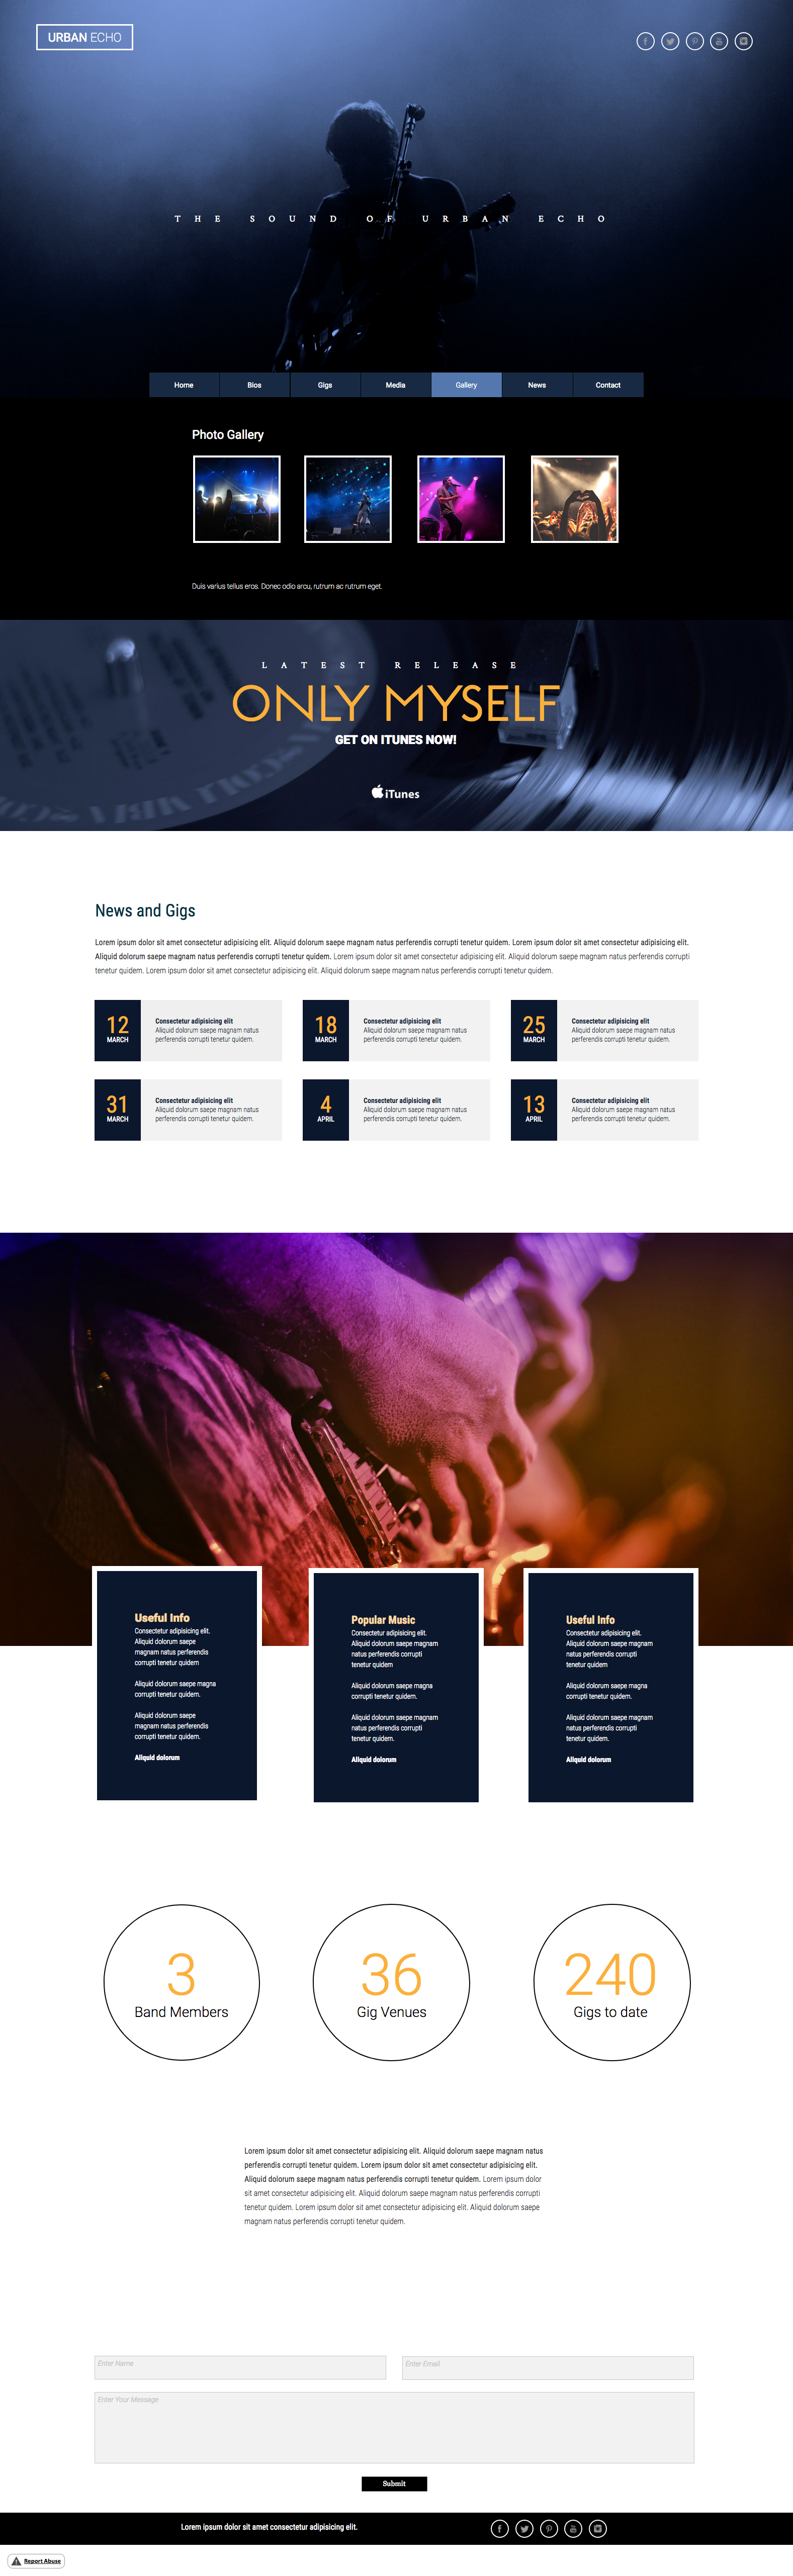 This Is A Fully Responsive Website Or Bands And Groups Web Design Web Design Inspiration Modern Website